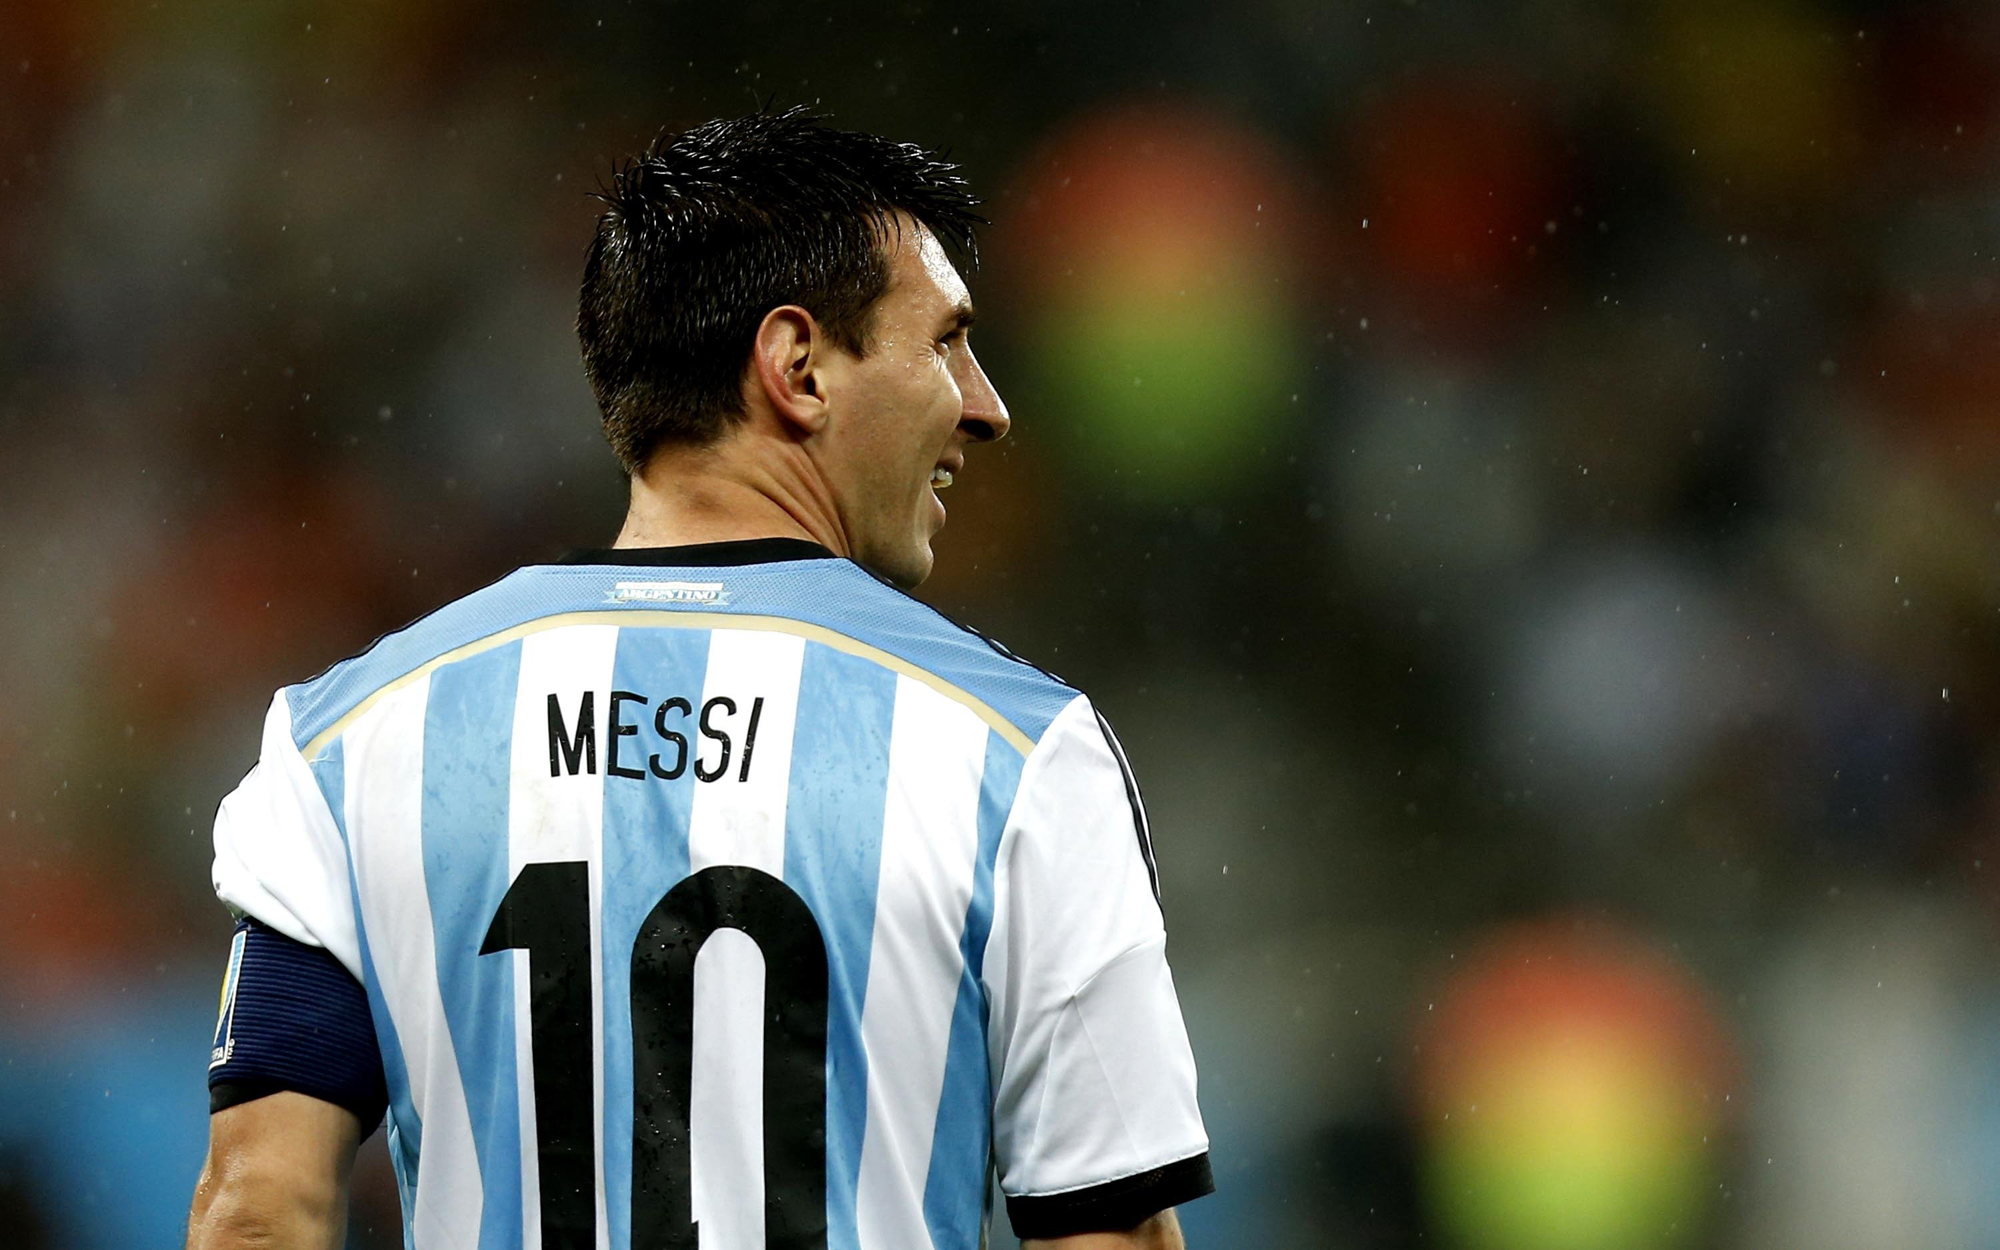 Argentina's Lionel Messi reacts during a semifinal match between Netherlands and Argentina of 2014 FIFA World Cup at the Arena de Sao Paulo Stadium in Sao Paulo, Brazil, on July 9, 2014.